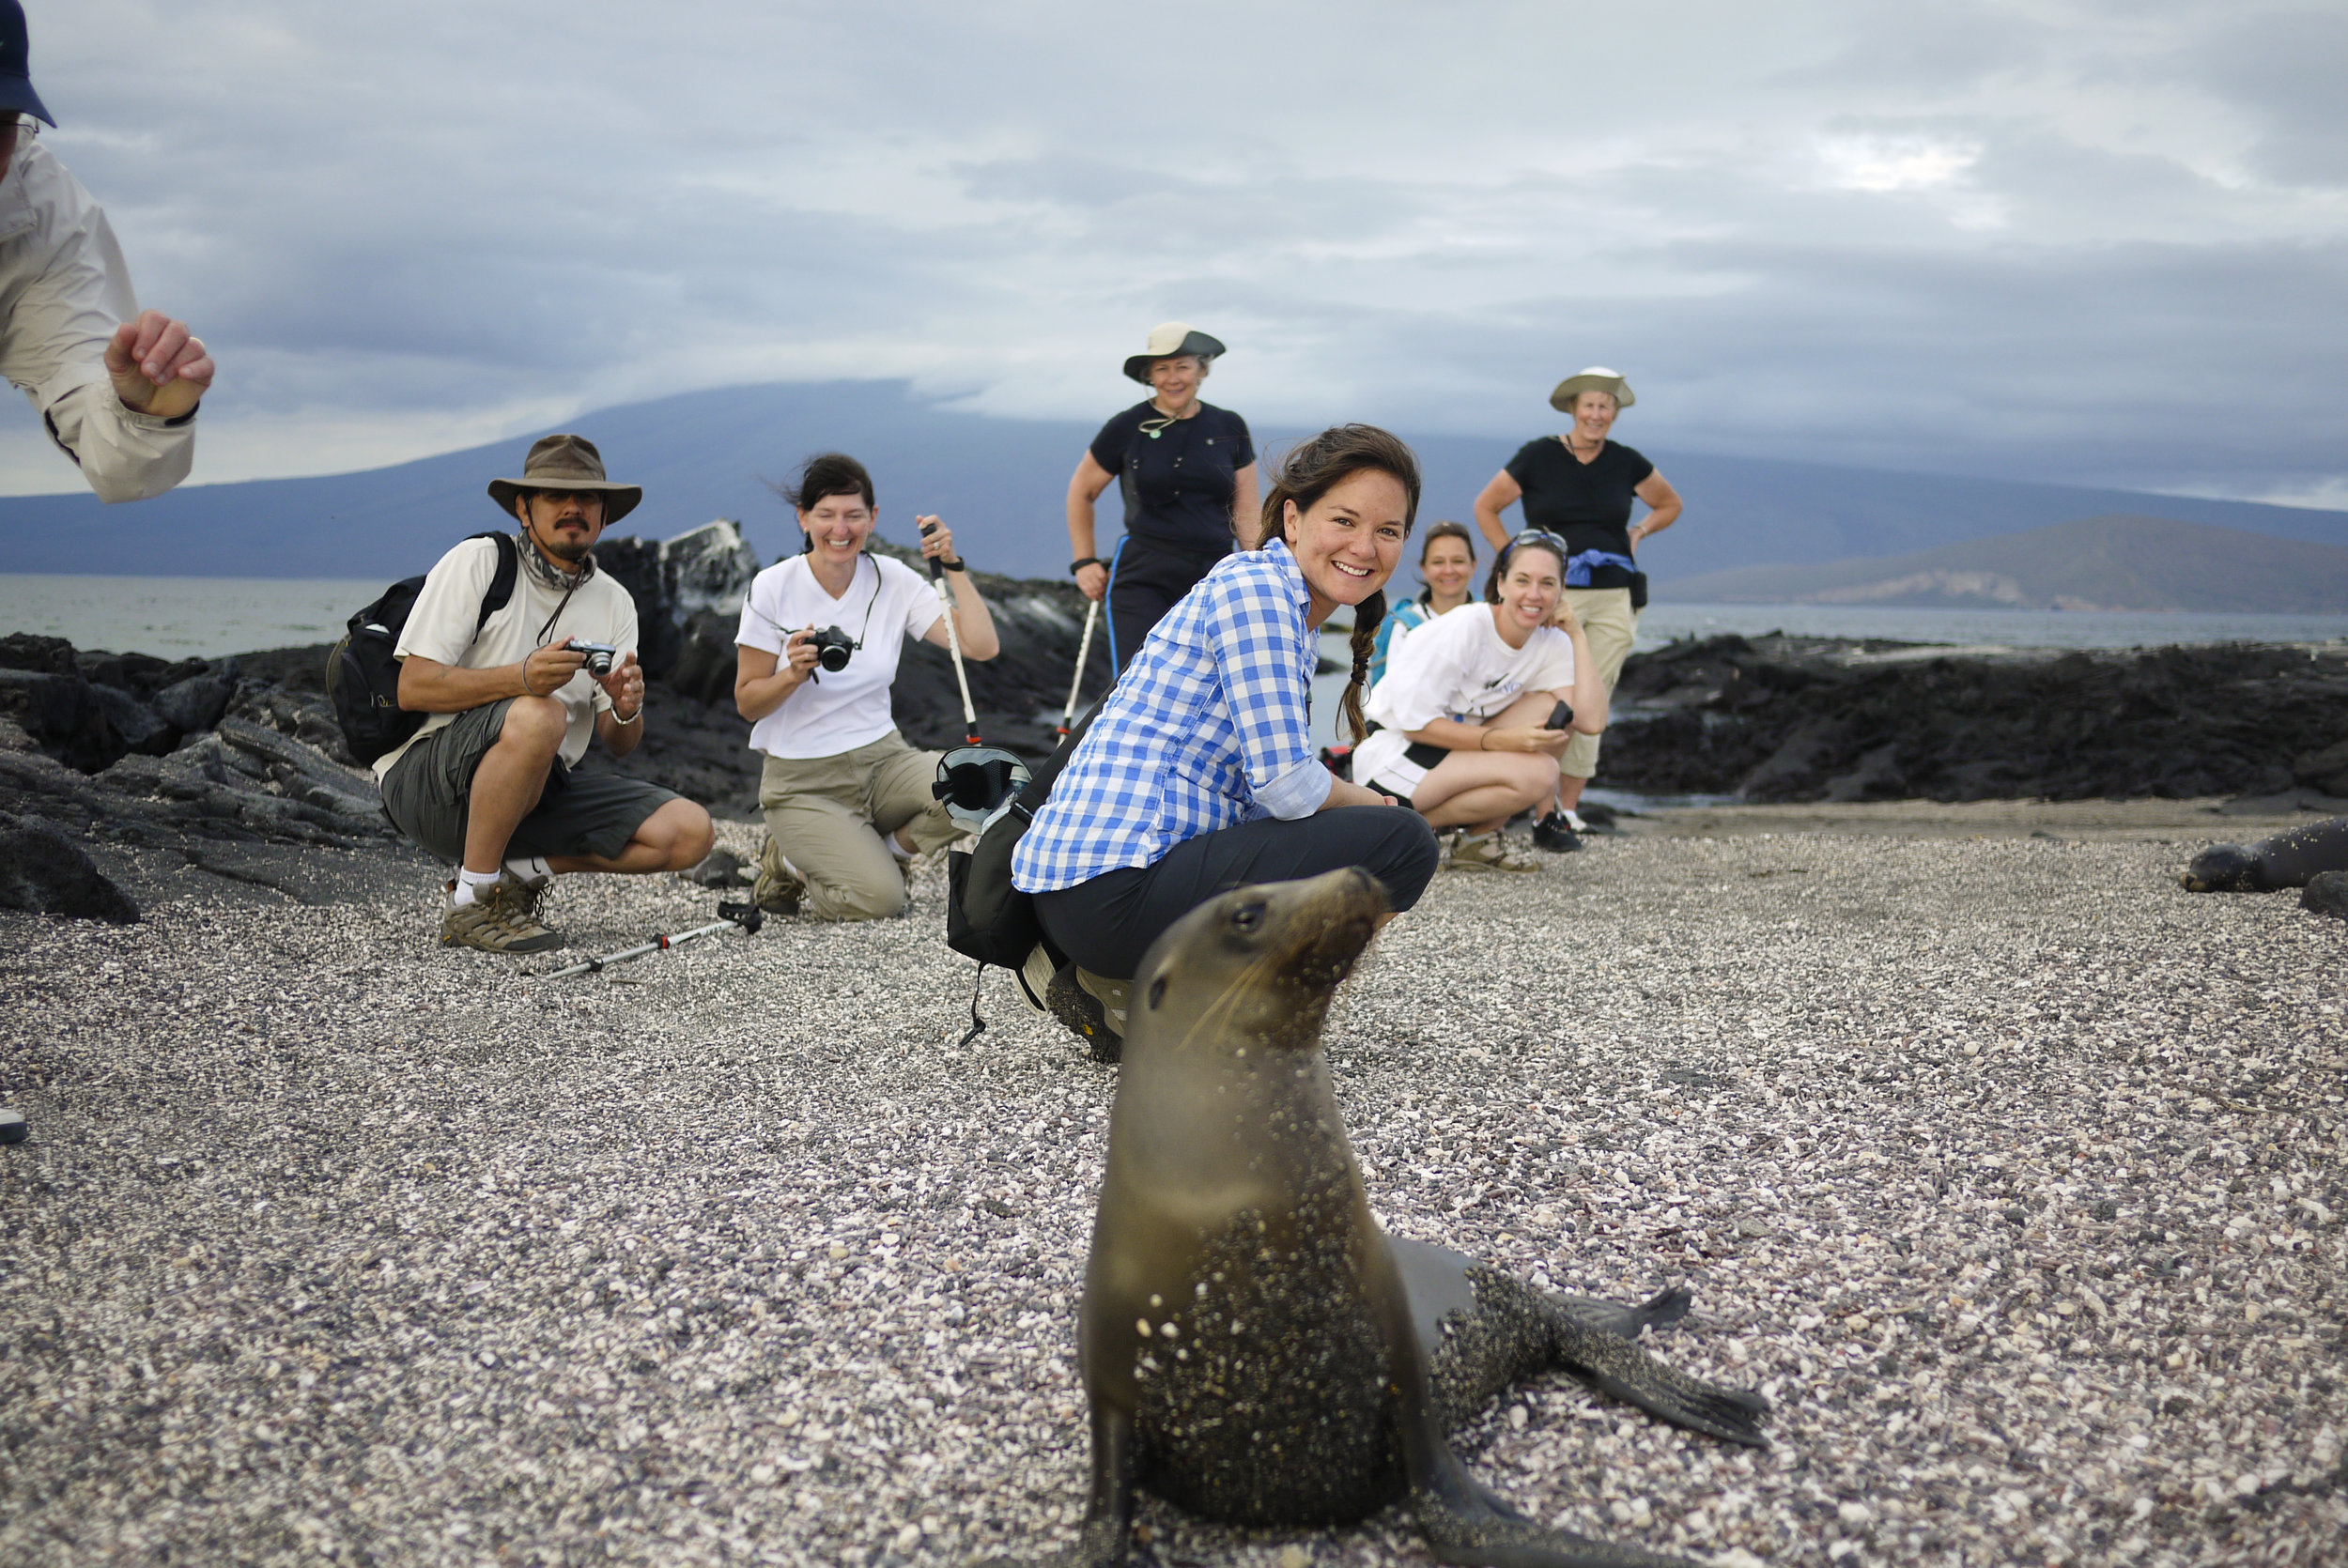 Group_sealion_PtaEspinoza_Fernandina_Phil_Yip.jpg